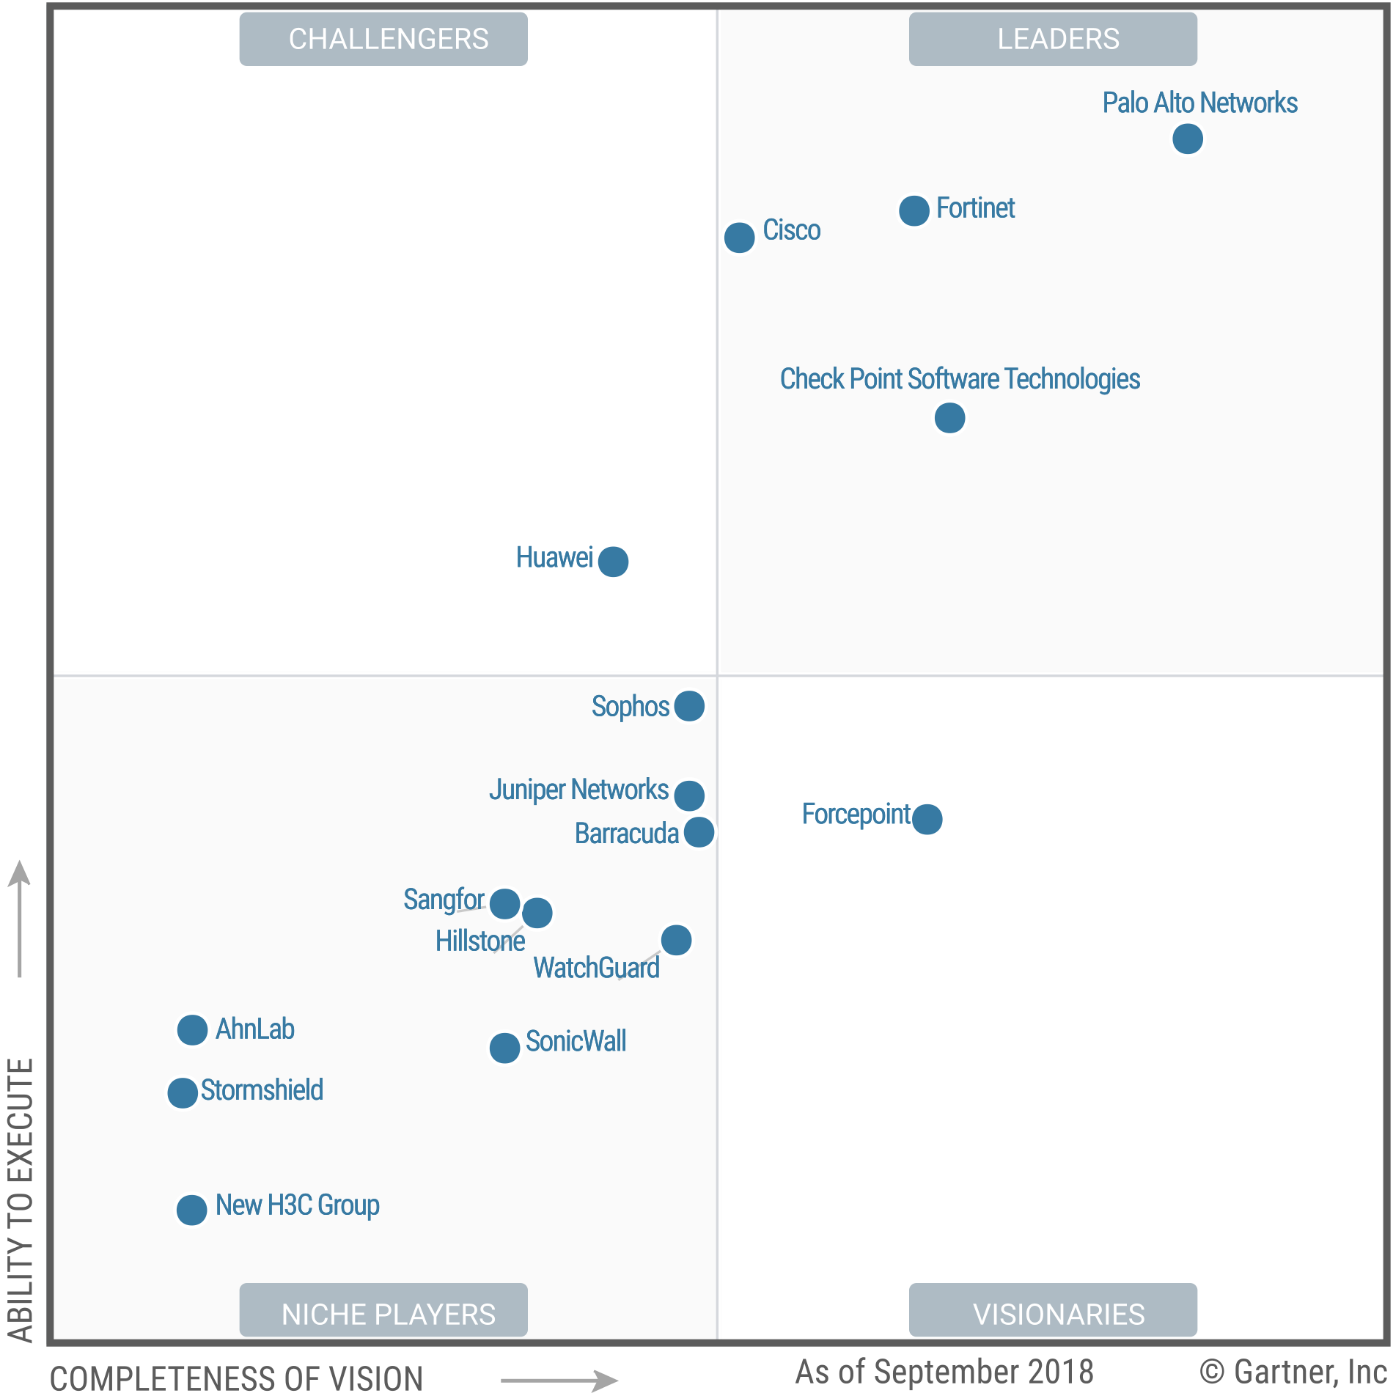 Magic Quadrant for (Enterprise) Network Firewalls 2018 (G00337968)